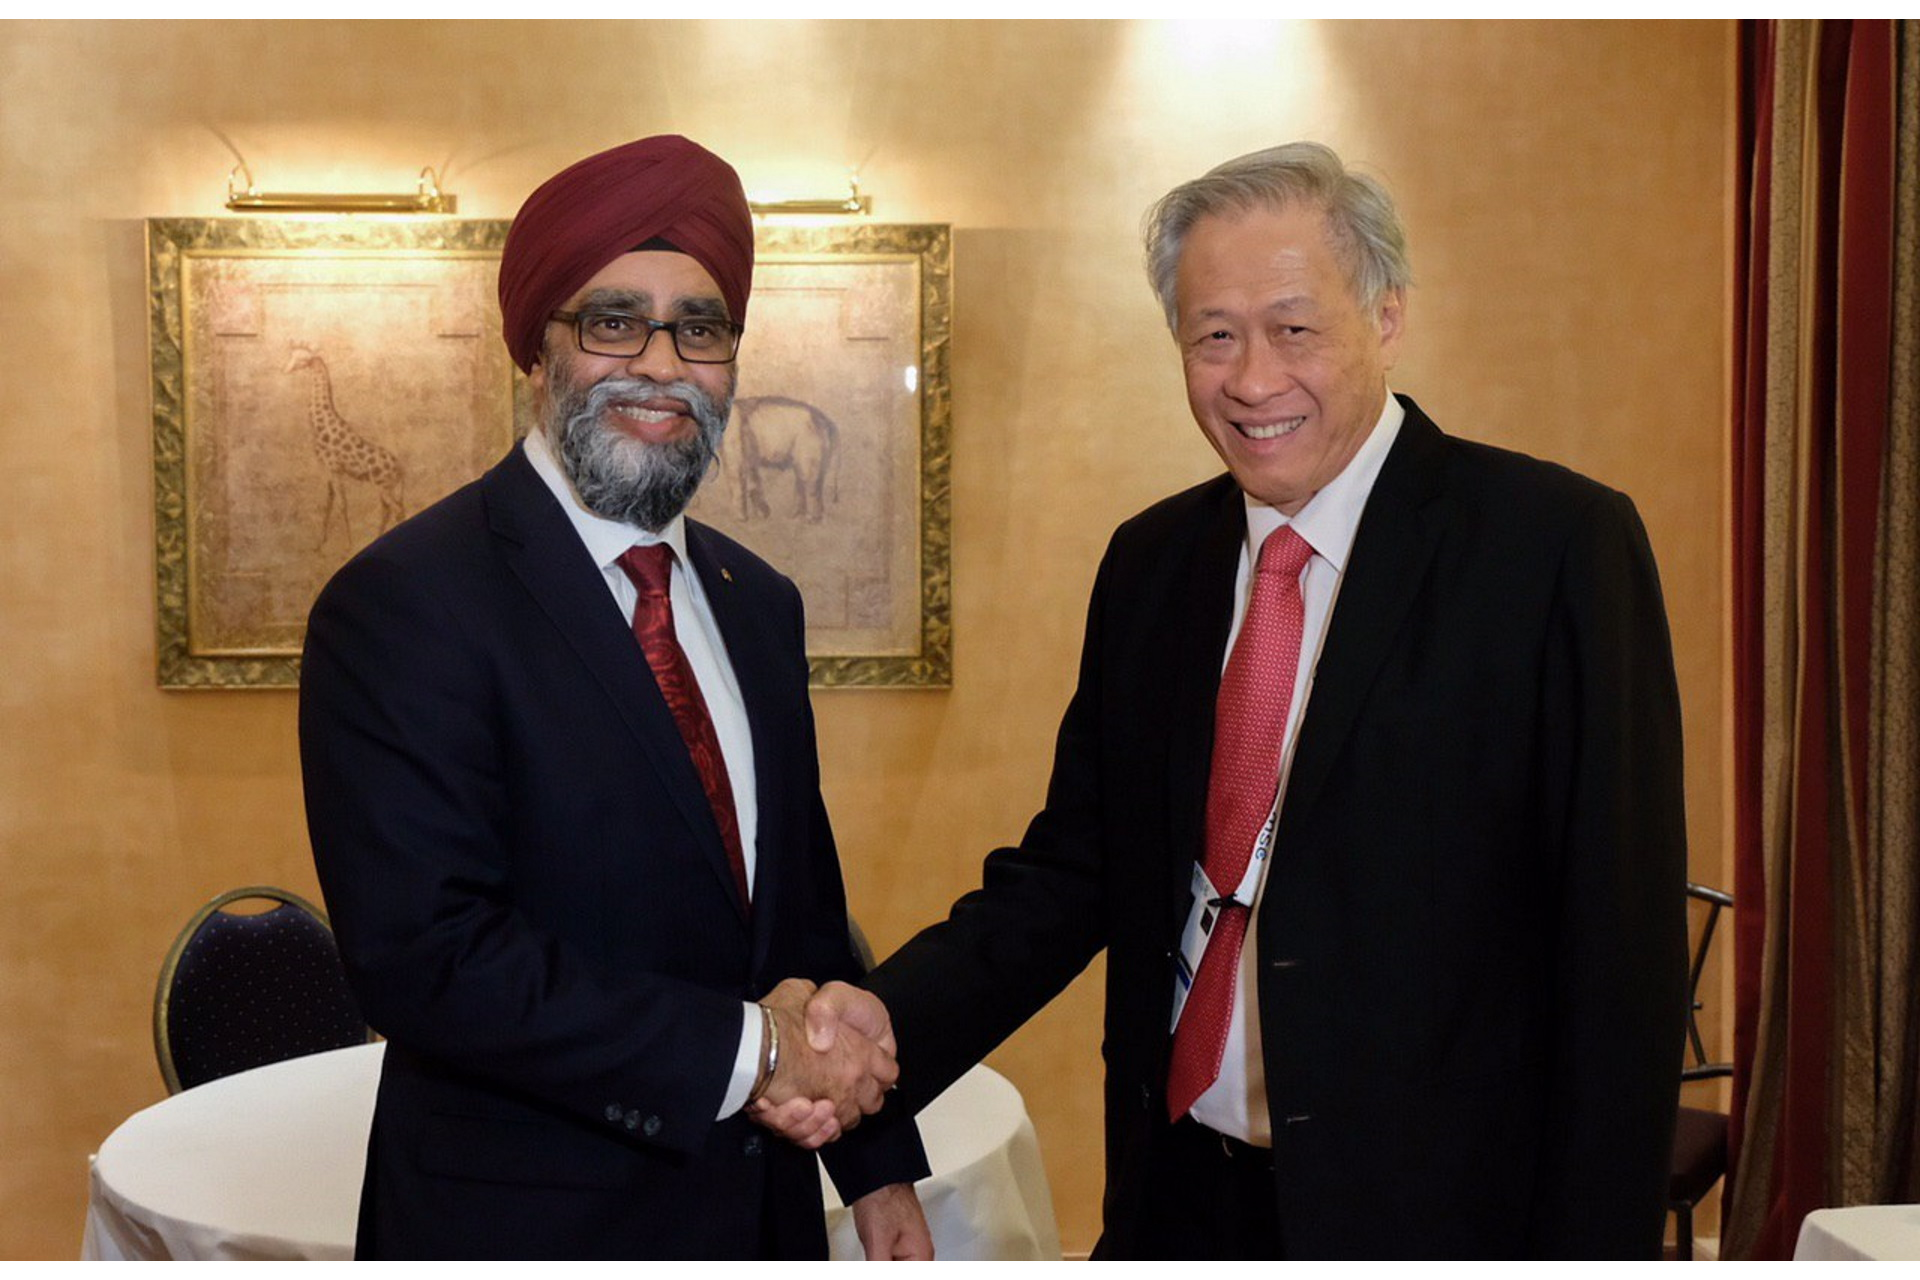 Dr Ng (right) met Canadian Minister of National Defence Harjit Singh Sajjan on the sidelines of the MSC.